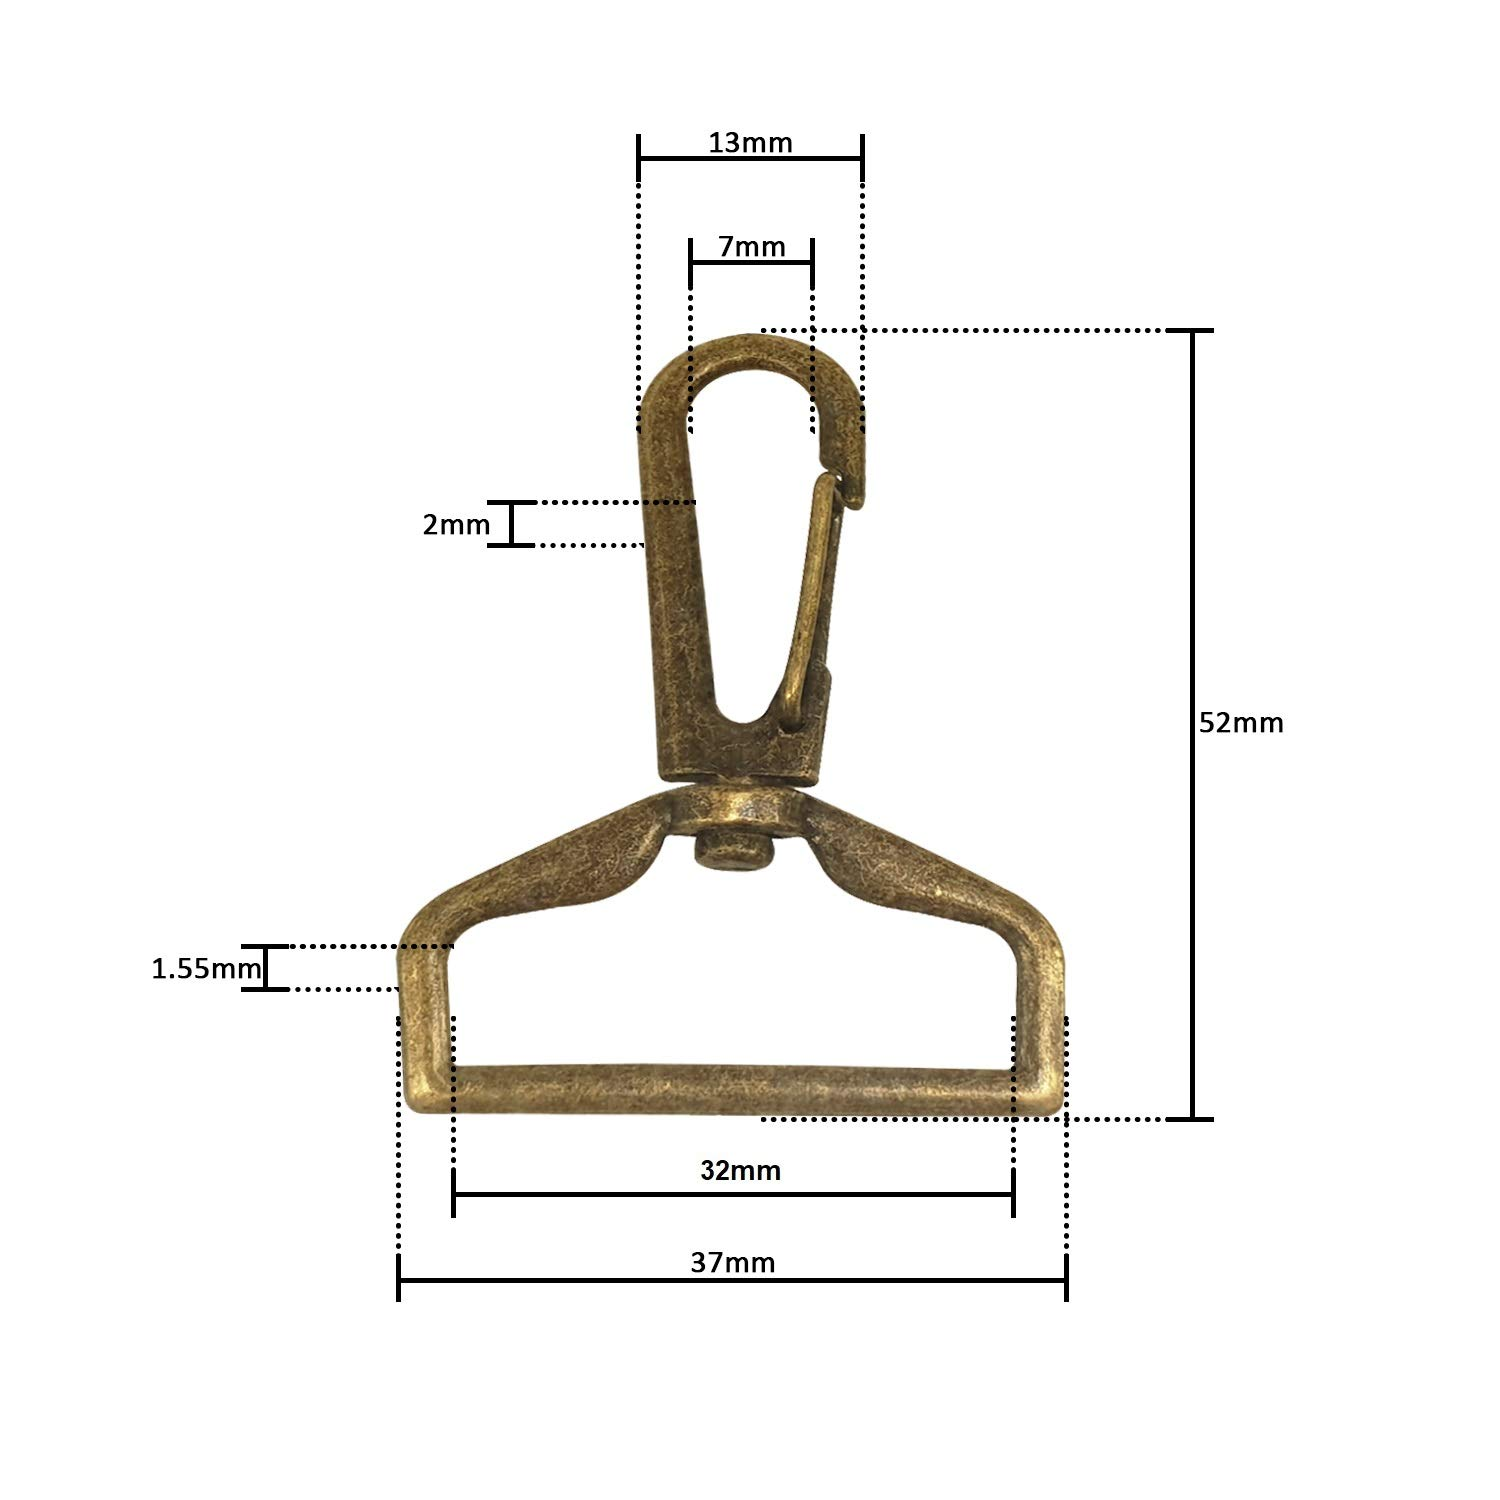 Hanging Item 25mm, Bronze, 1pc Purse Bag Accessories WedDecor Lobster Claps Hook Swivel Claw Clip Snap Buckle Fastener for Keychain Backpack Straps